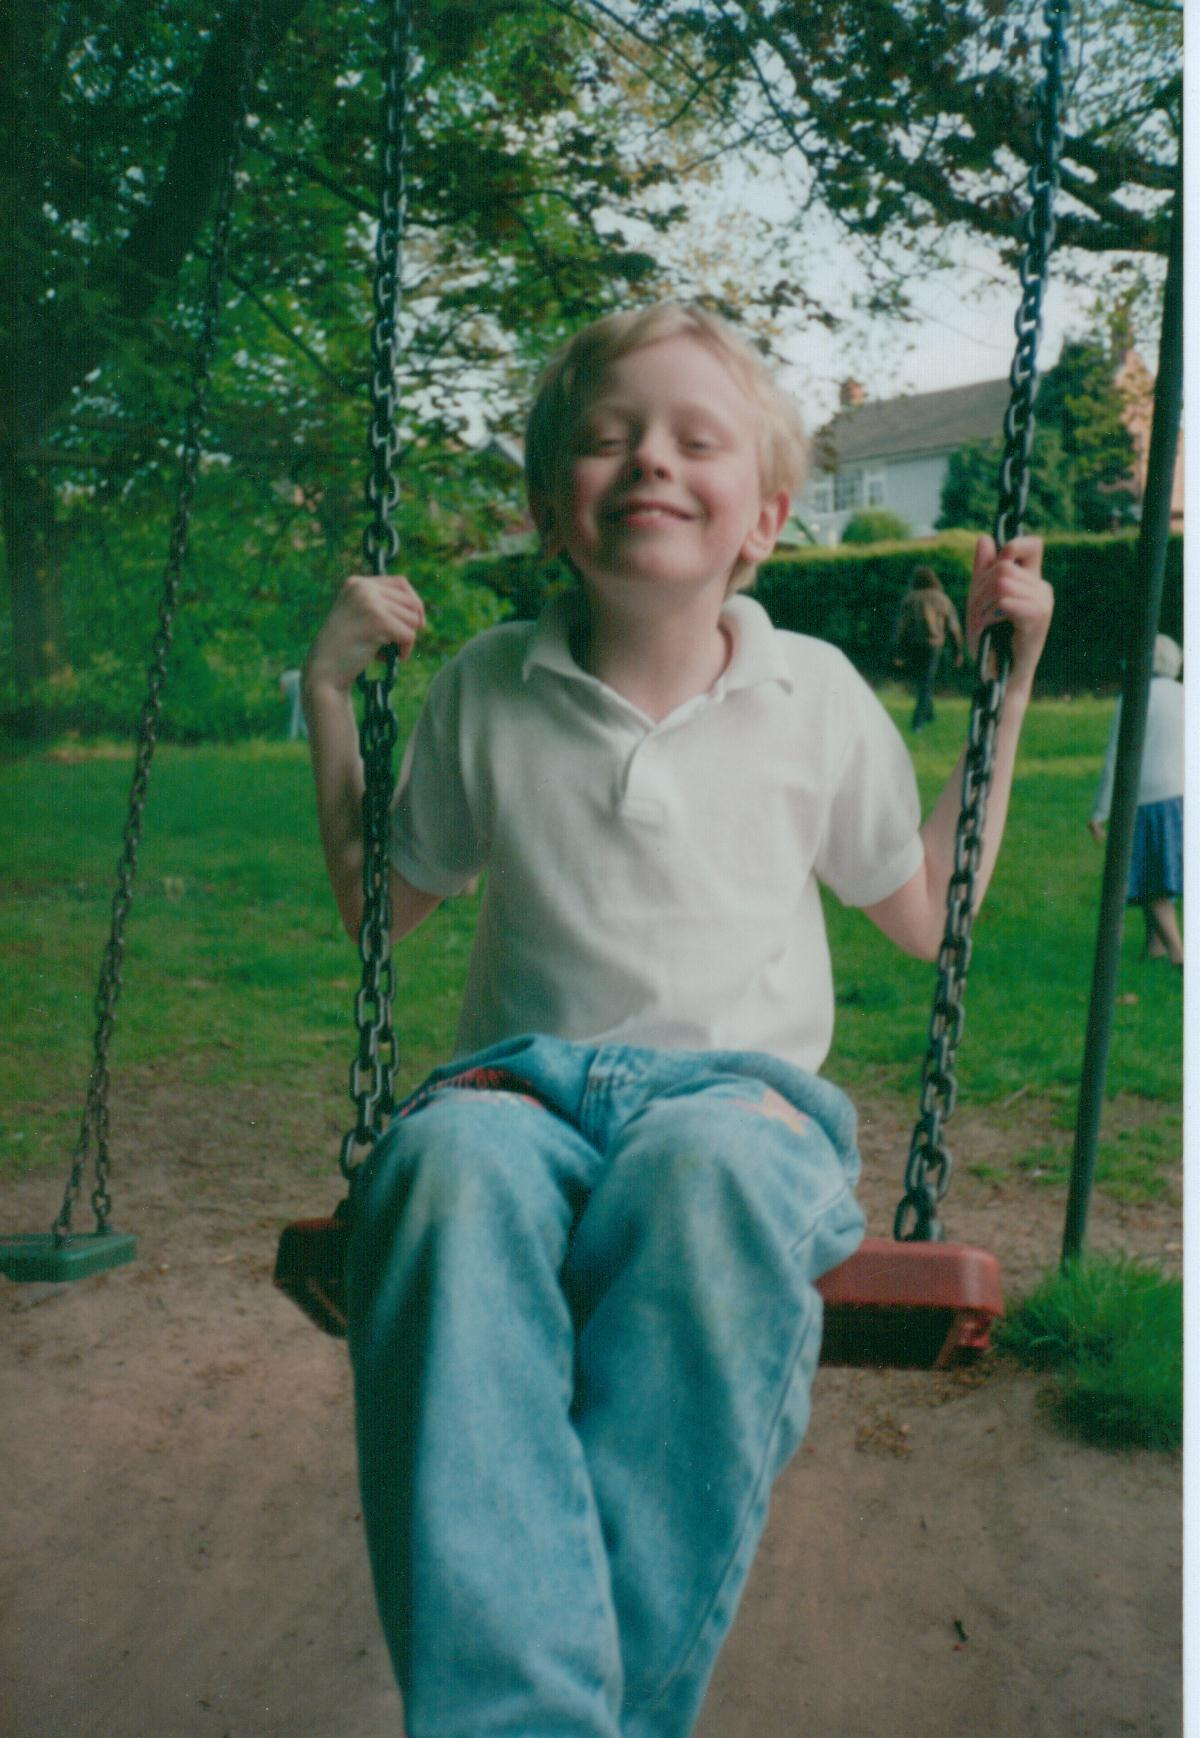 I guess I was a bright child, in my own way. Even though today, that smile alone is enough for an Asperger's diagnosis.